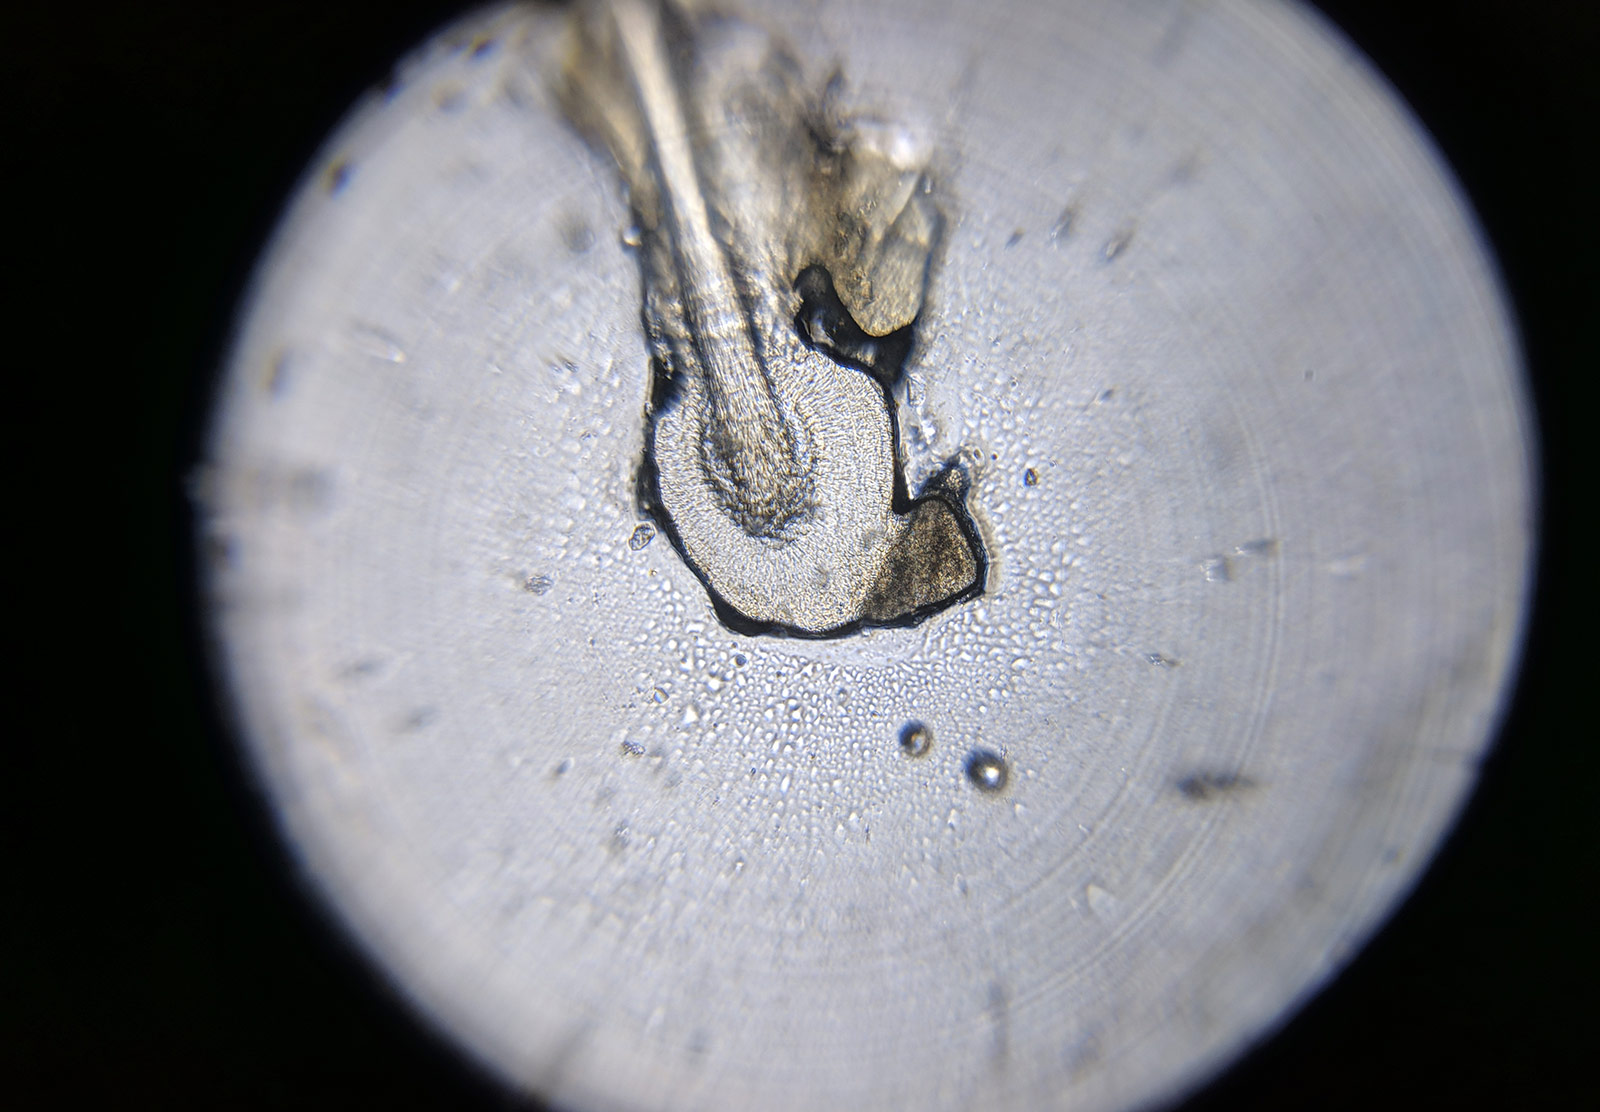 Hair folicle under microscope